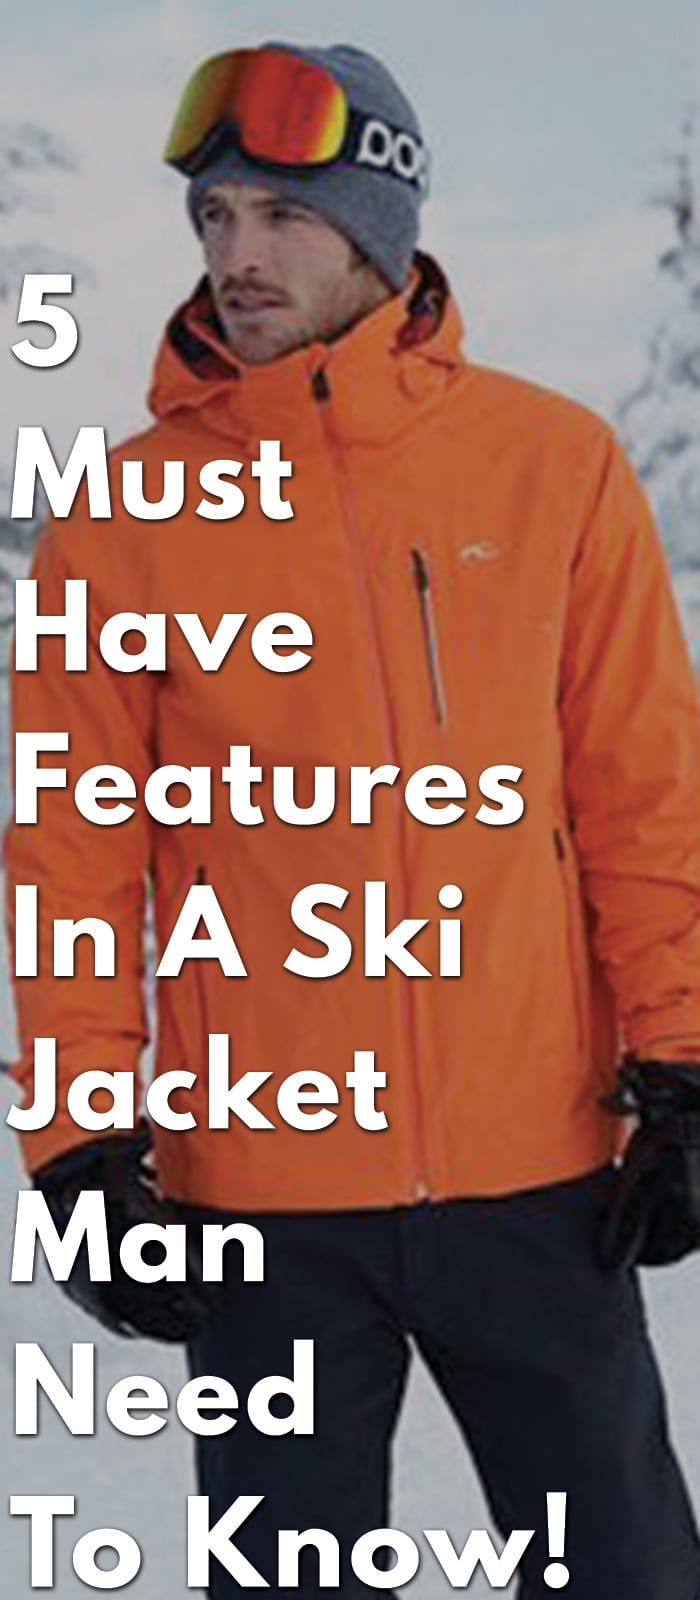 5-Must-Have-Features-In-A-Ski-Jacket-Man-Need-To-Know!